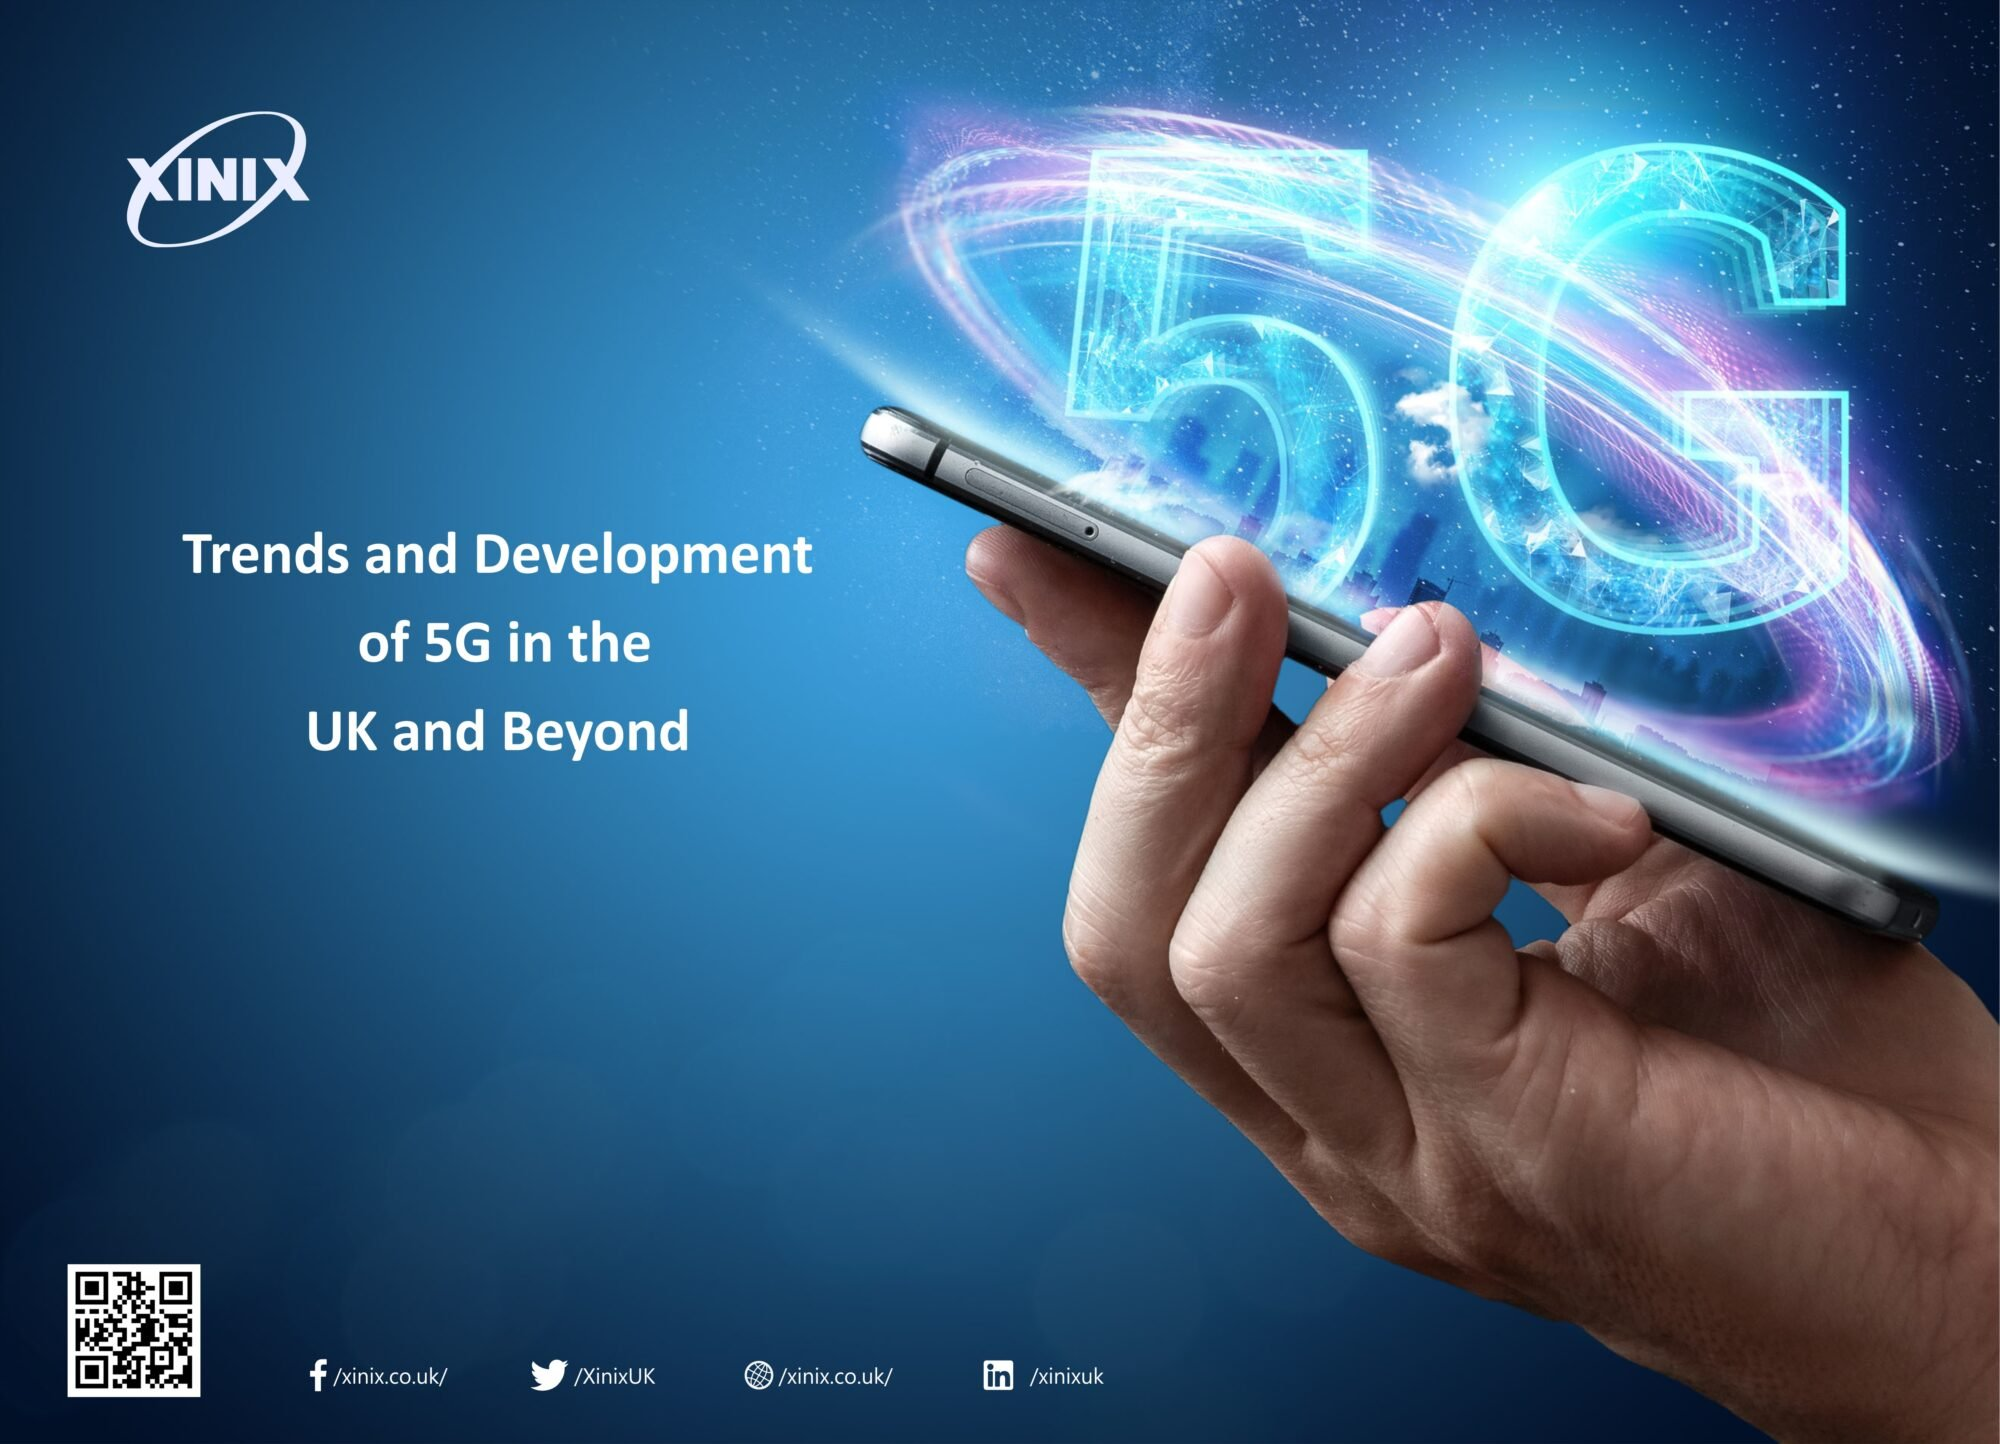 Trends and Development of 5G in the UK and Beyond